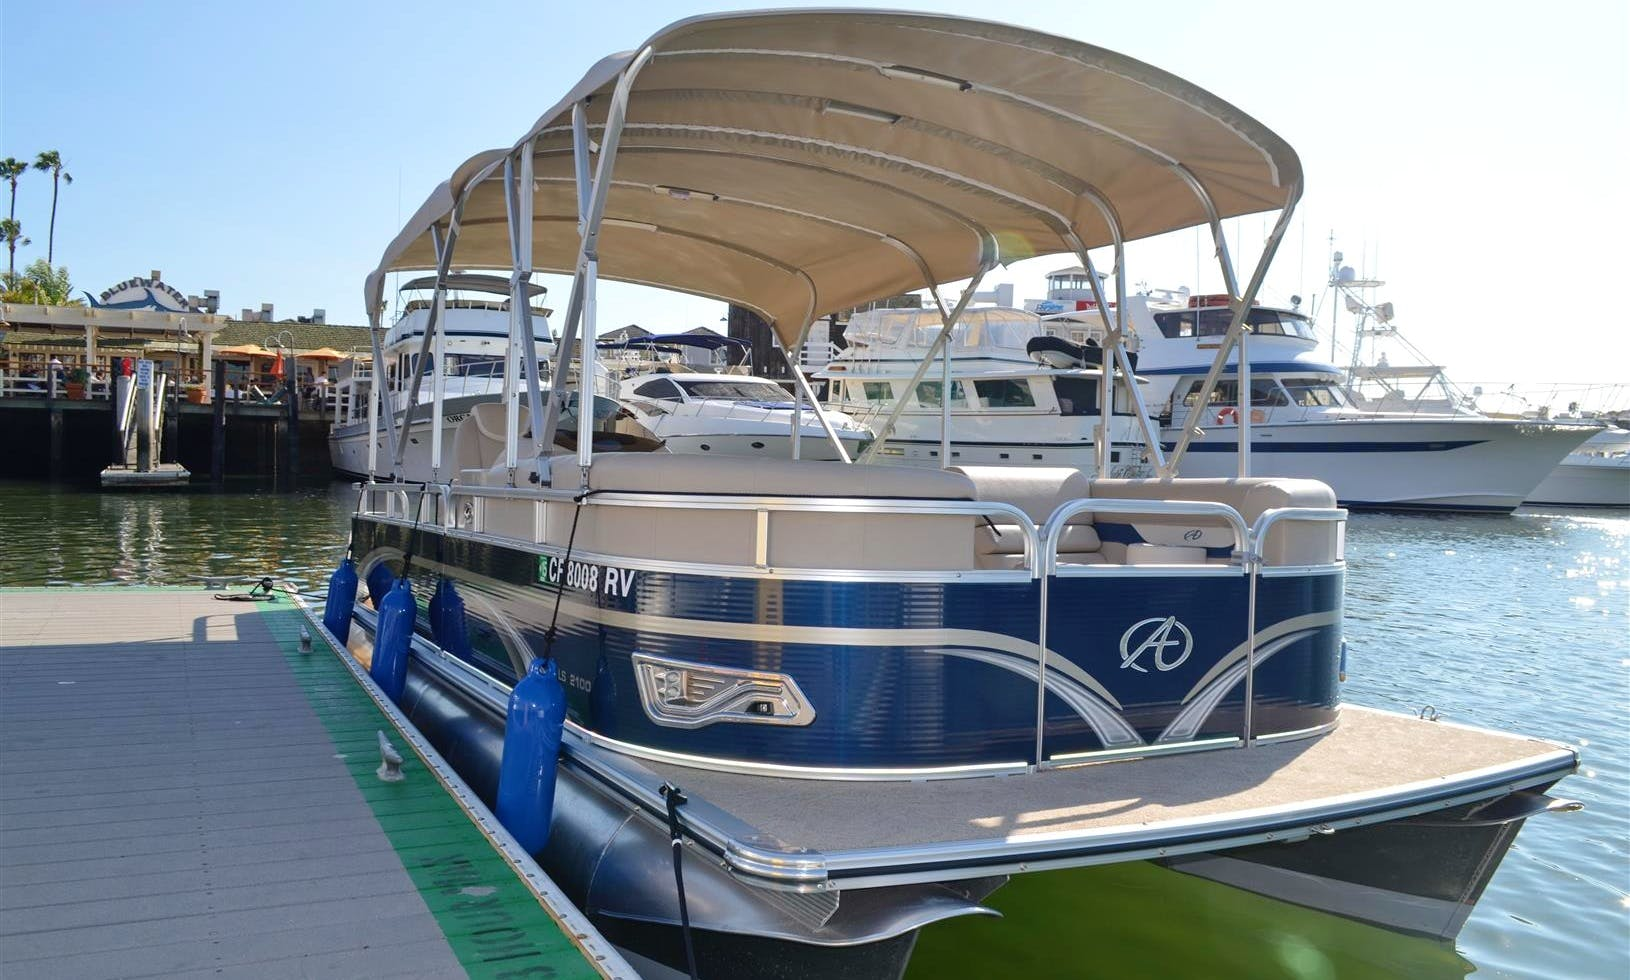 Rent this 21ft Deluxe Avalon Pontoon in Newport Beach, California